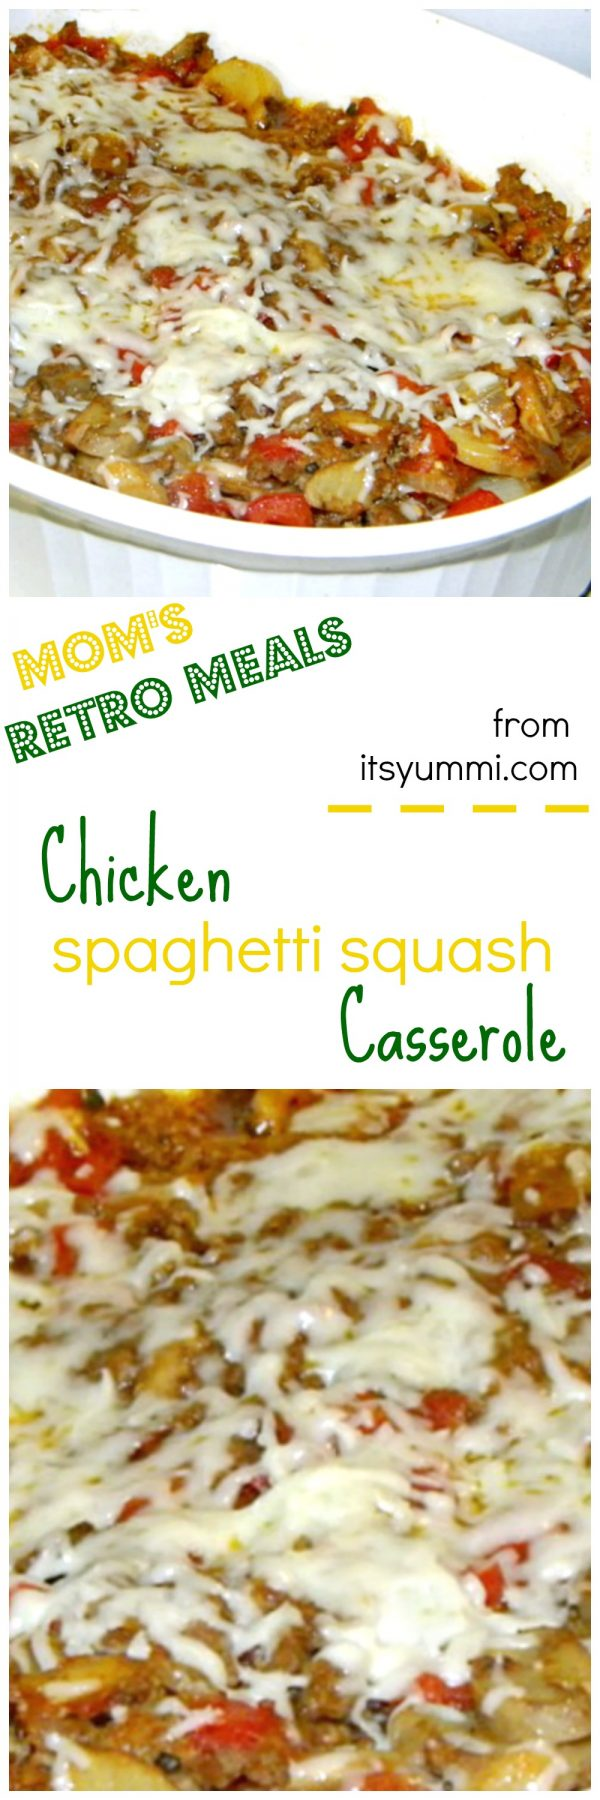 a retro meal of Spaghetti Squash Casserole with chicken